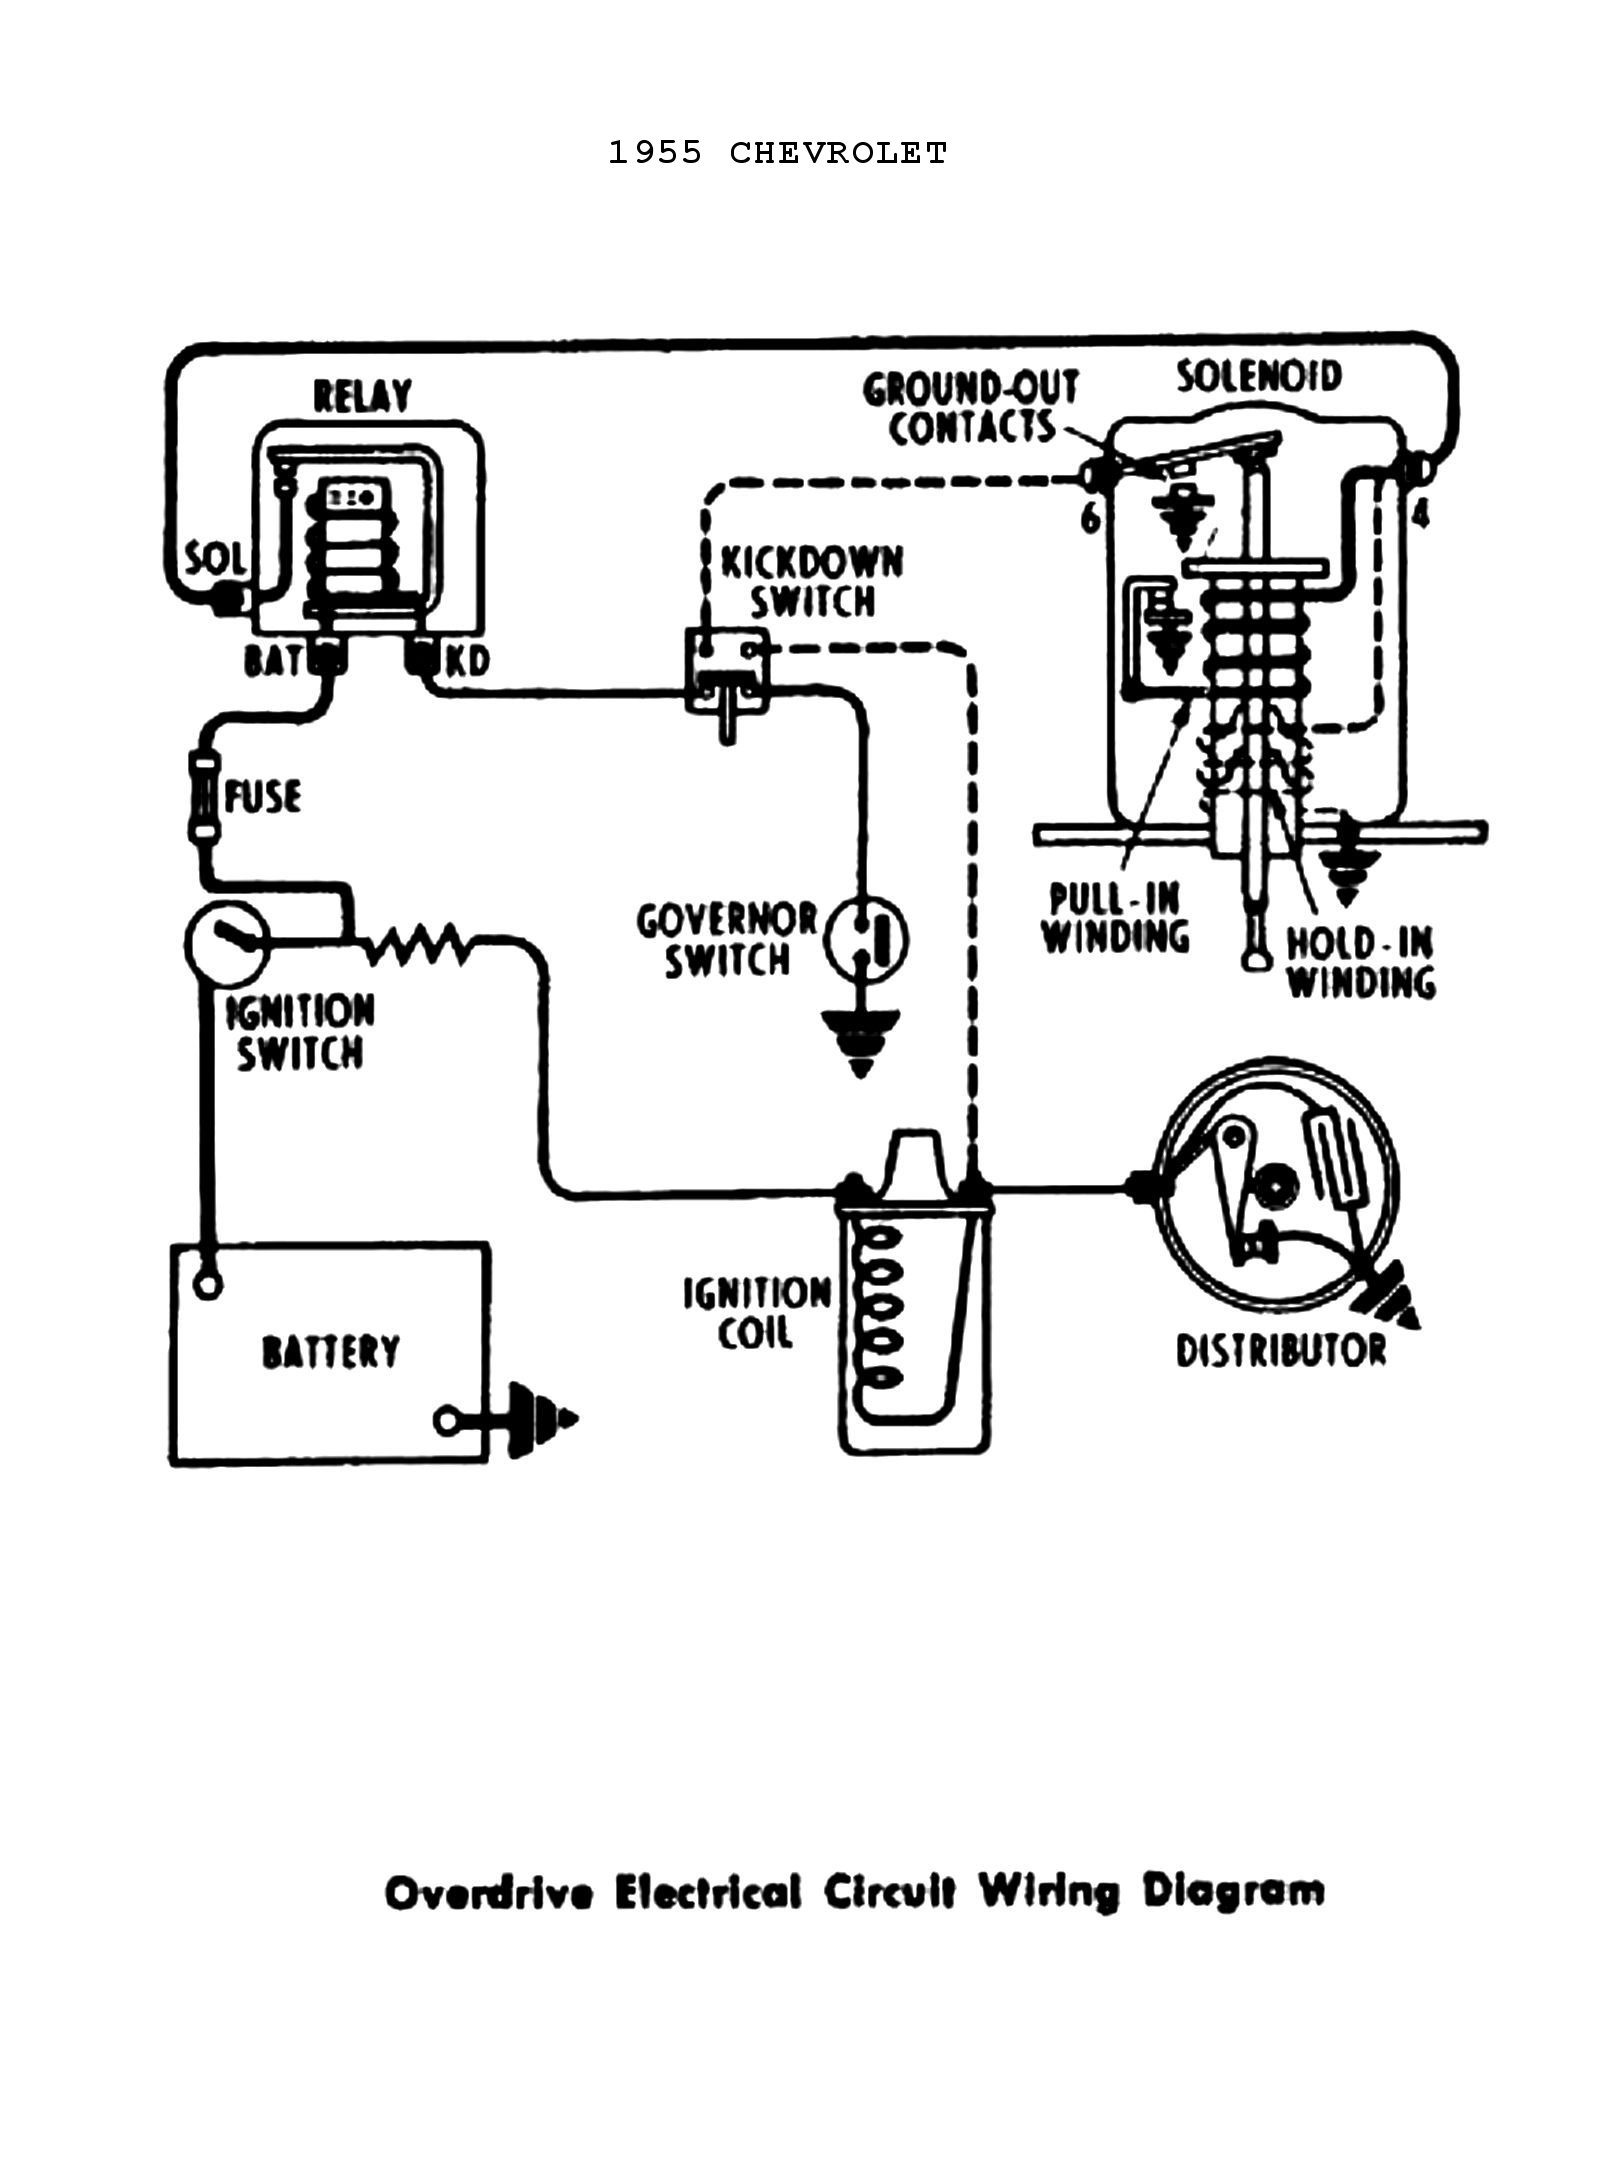 chevy wiring diagrams rh chevy oldcarmanualproject com 1995 chevy ignition switch wiring diagram 1955 Chevrolet Wiring Diagram